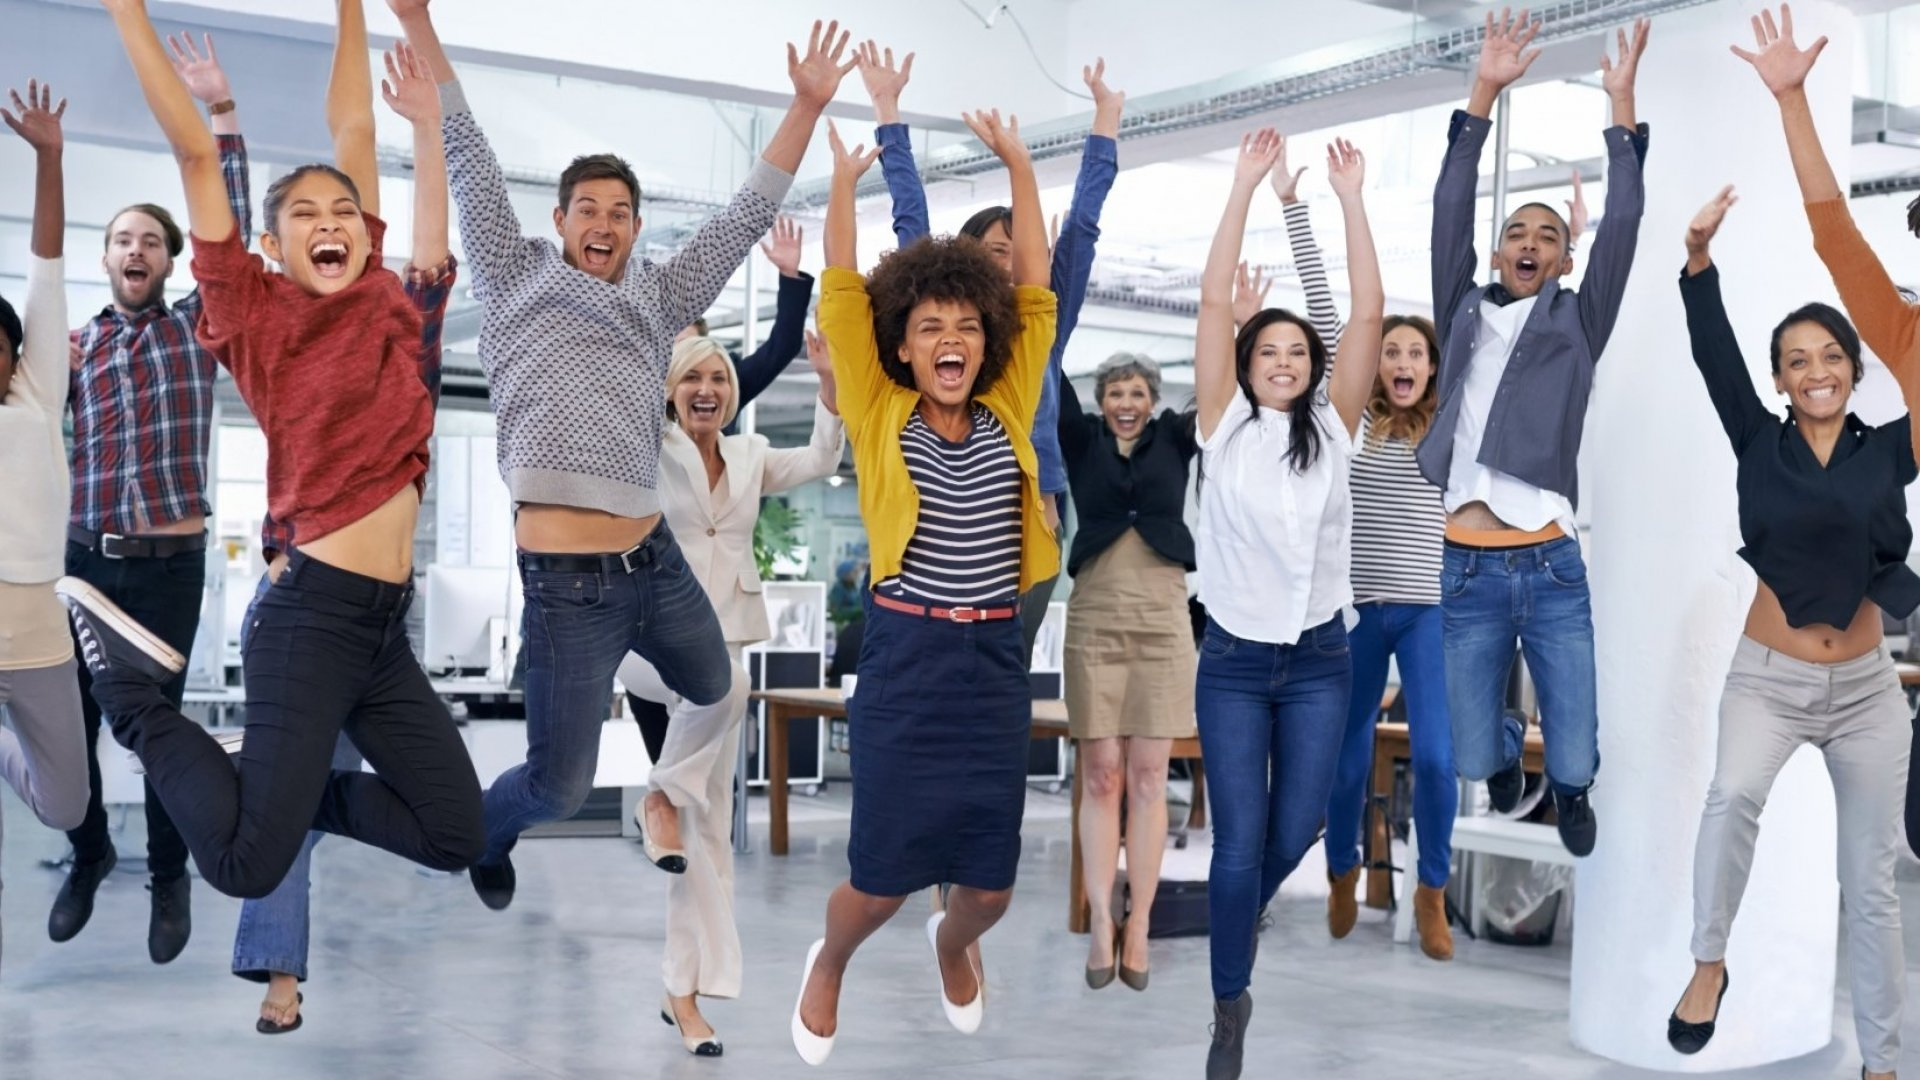 9 Workplace Hacks to Increase Productivity and Happiness (but Most Bosses Don't Think of Them)